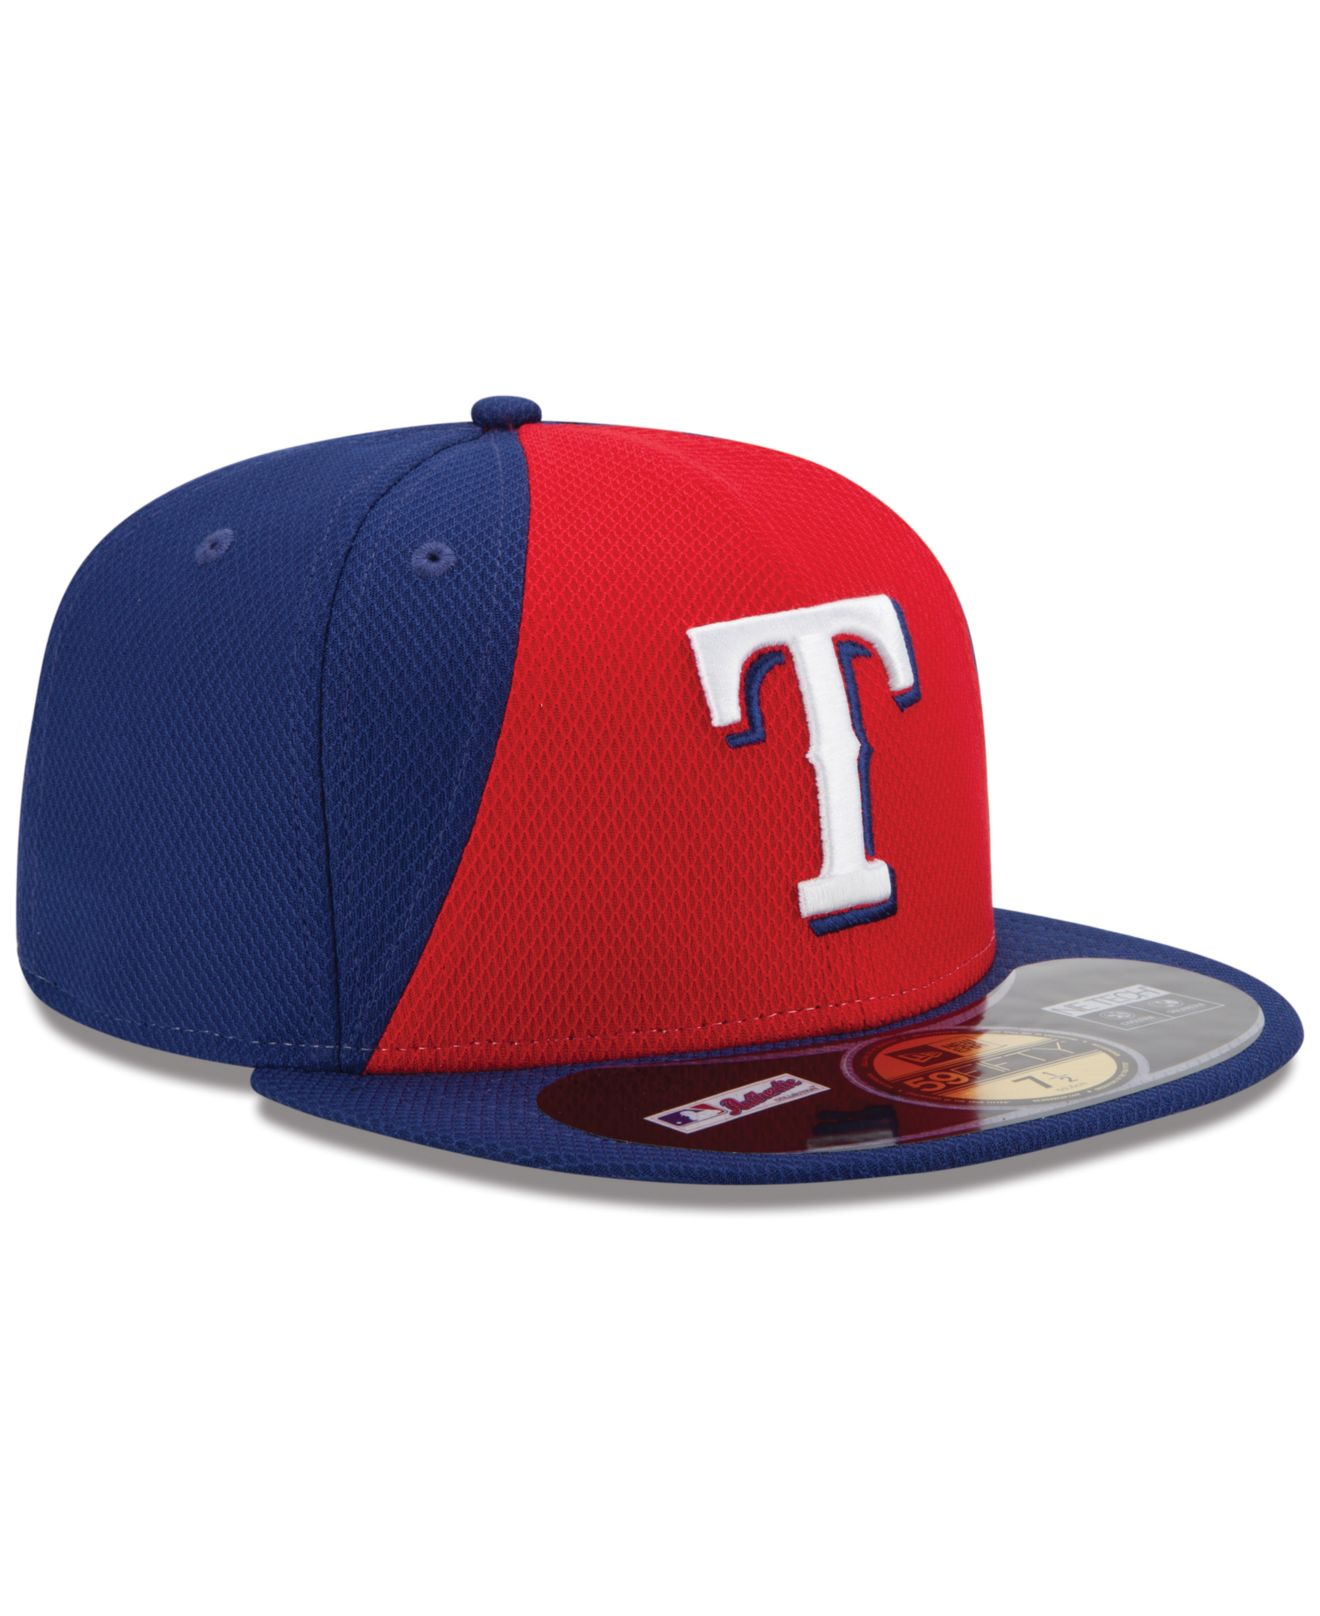 quality design e1a2a 76157 KTZ Texas Rangers 2014 All Star Game Patch 59Fifty Cap in Red for ...